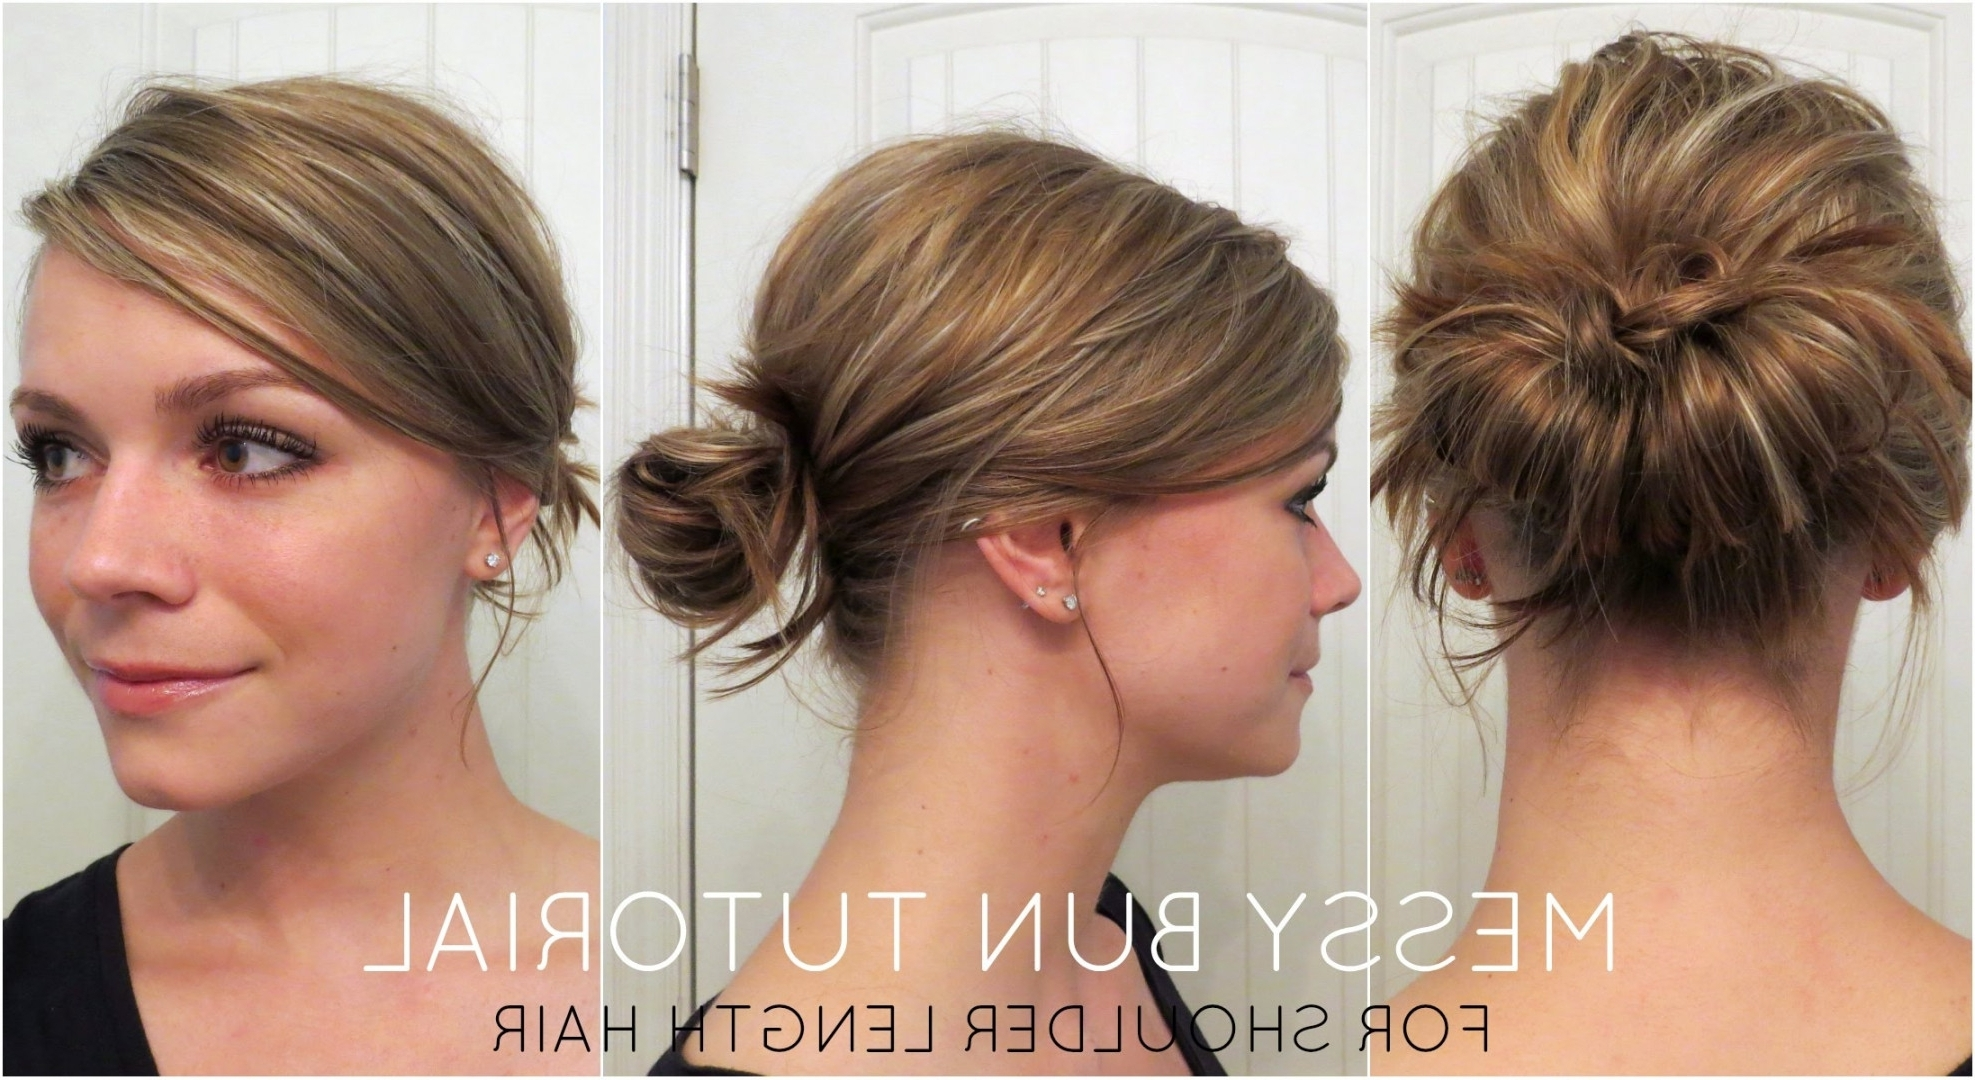 Messy Updos For Medium Hair Quick Updo Hairstyles For Medium Regarding Quick Messy Bun Updo Hairstyles (View 8 of 15)